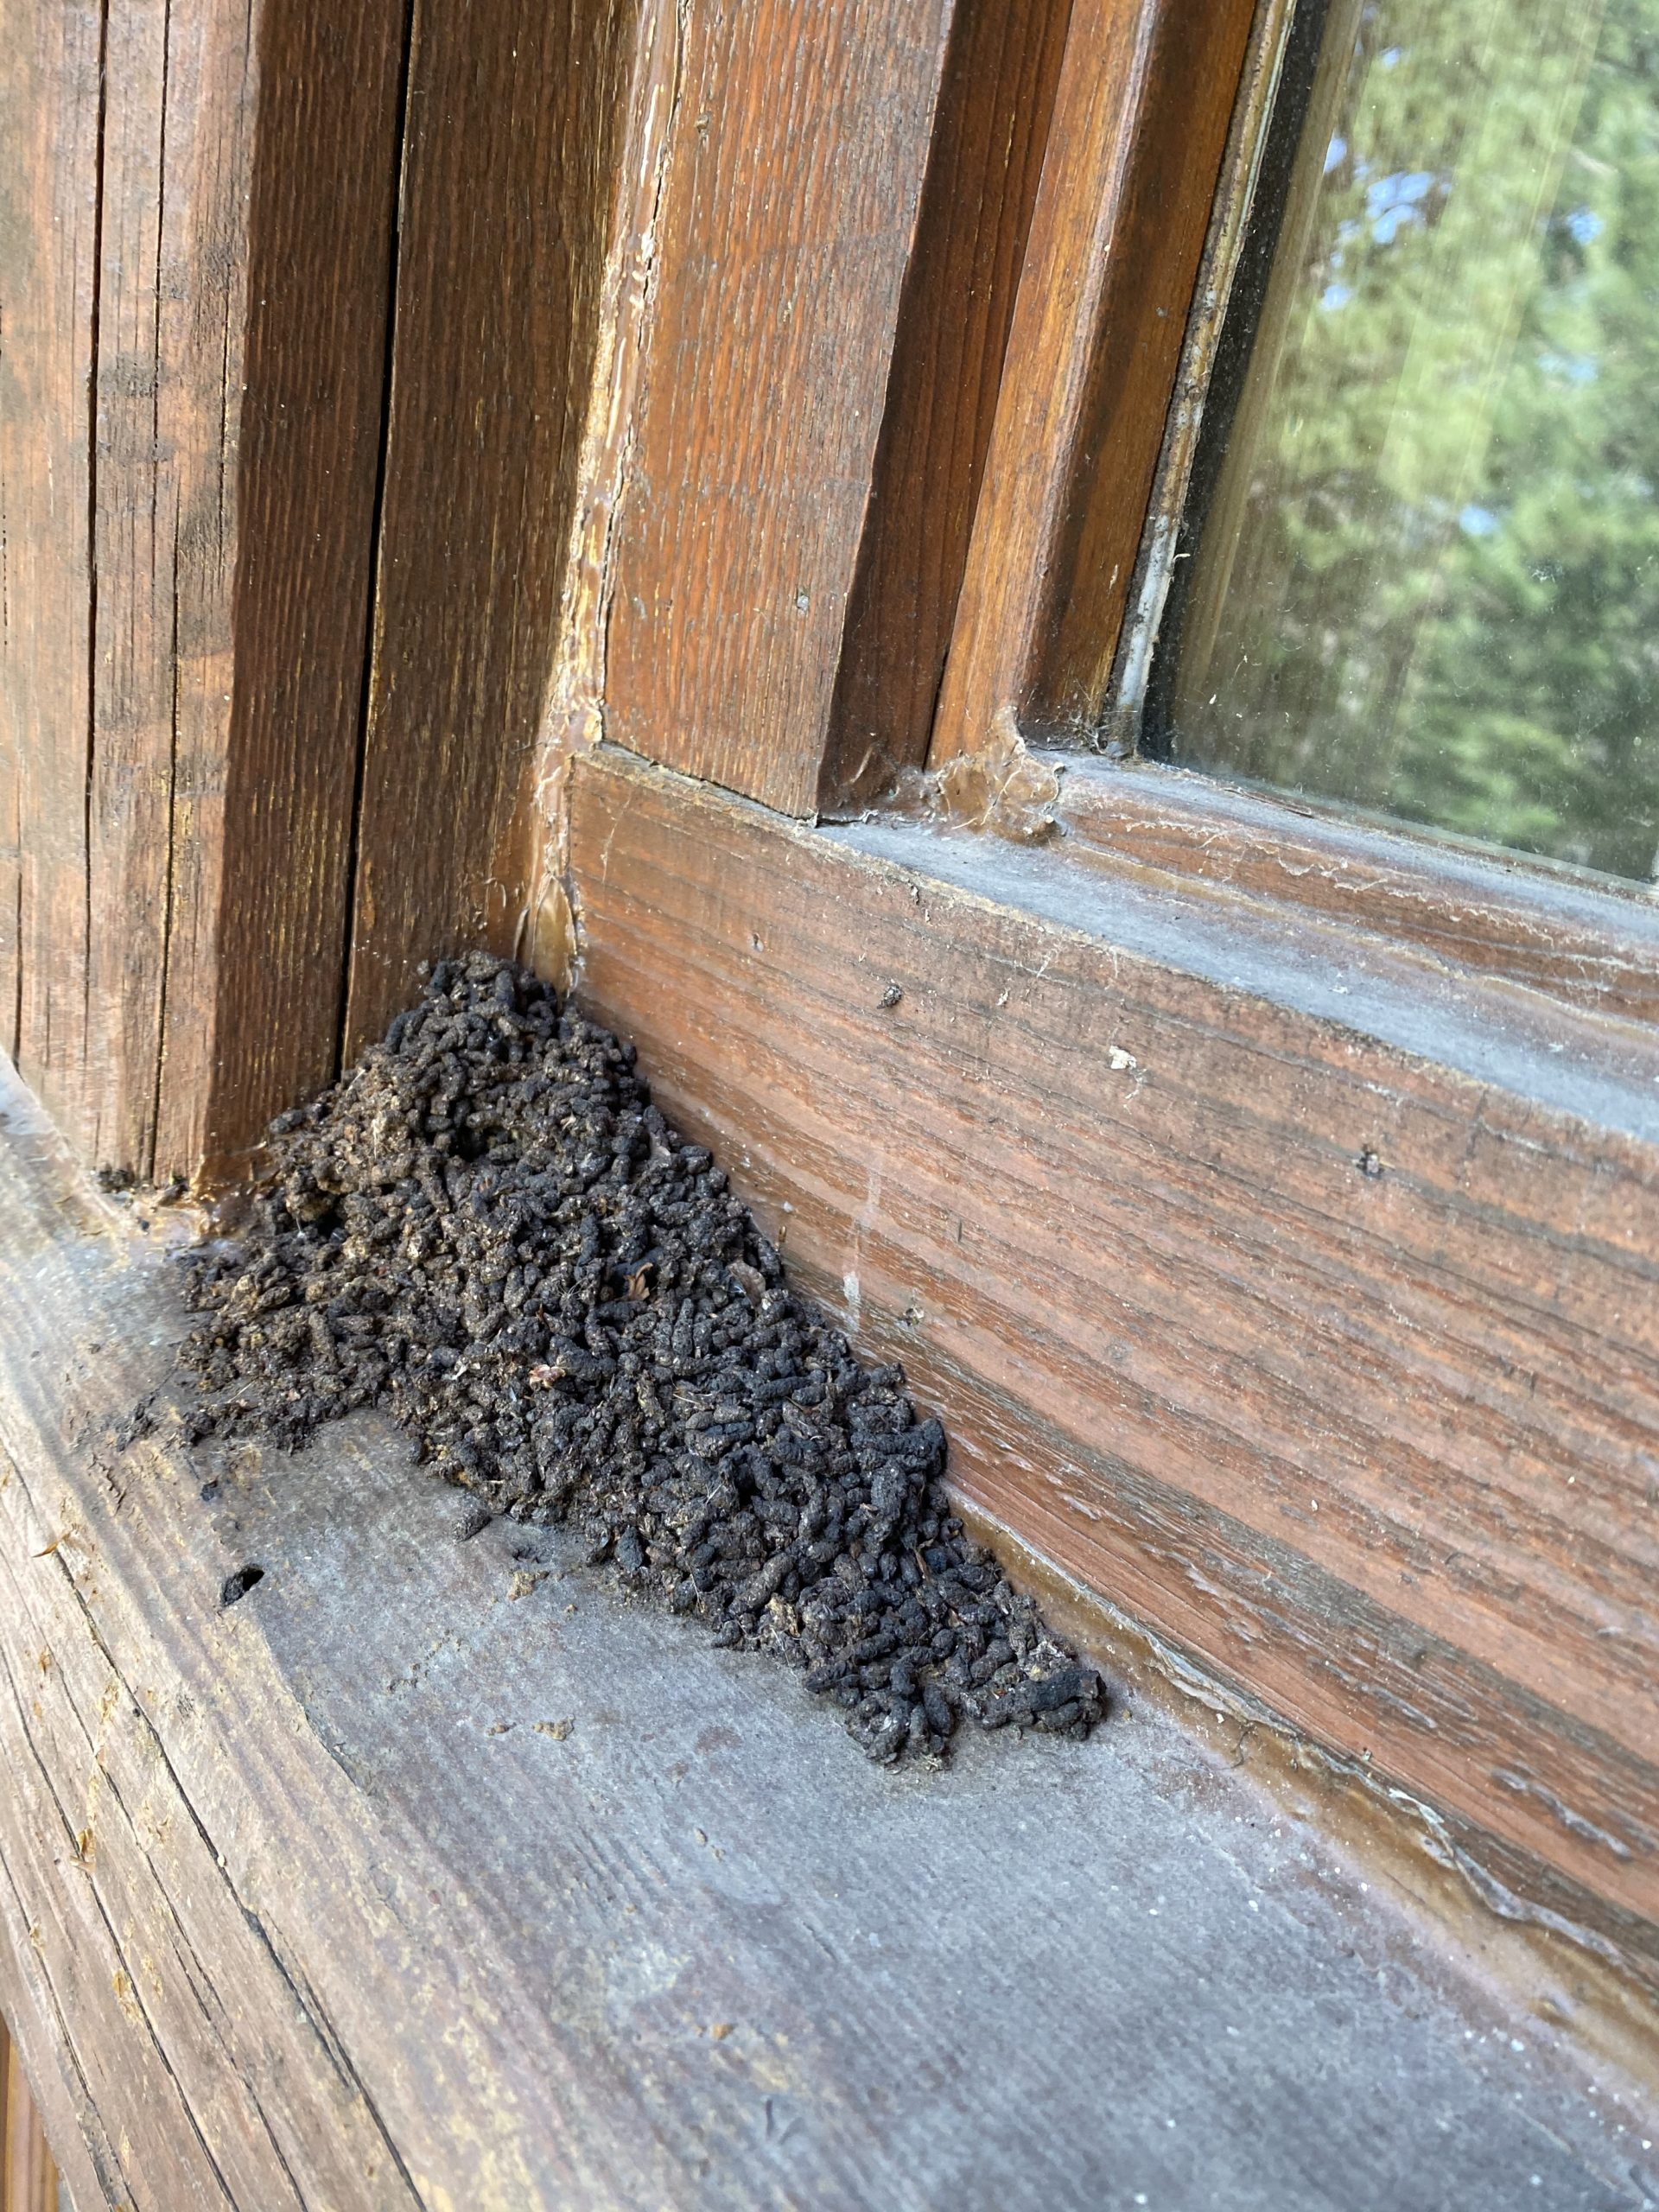 Buildup of bat guano in the corner of a window recess.